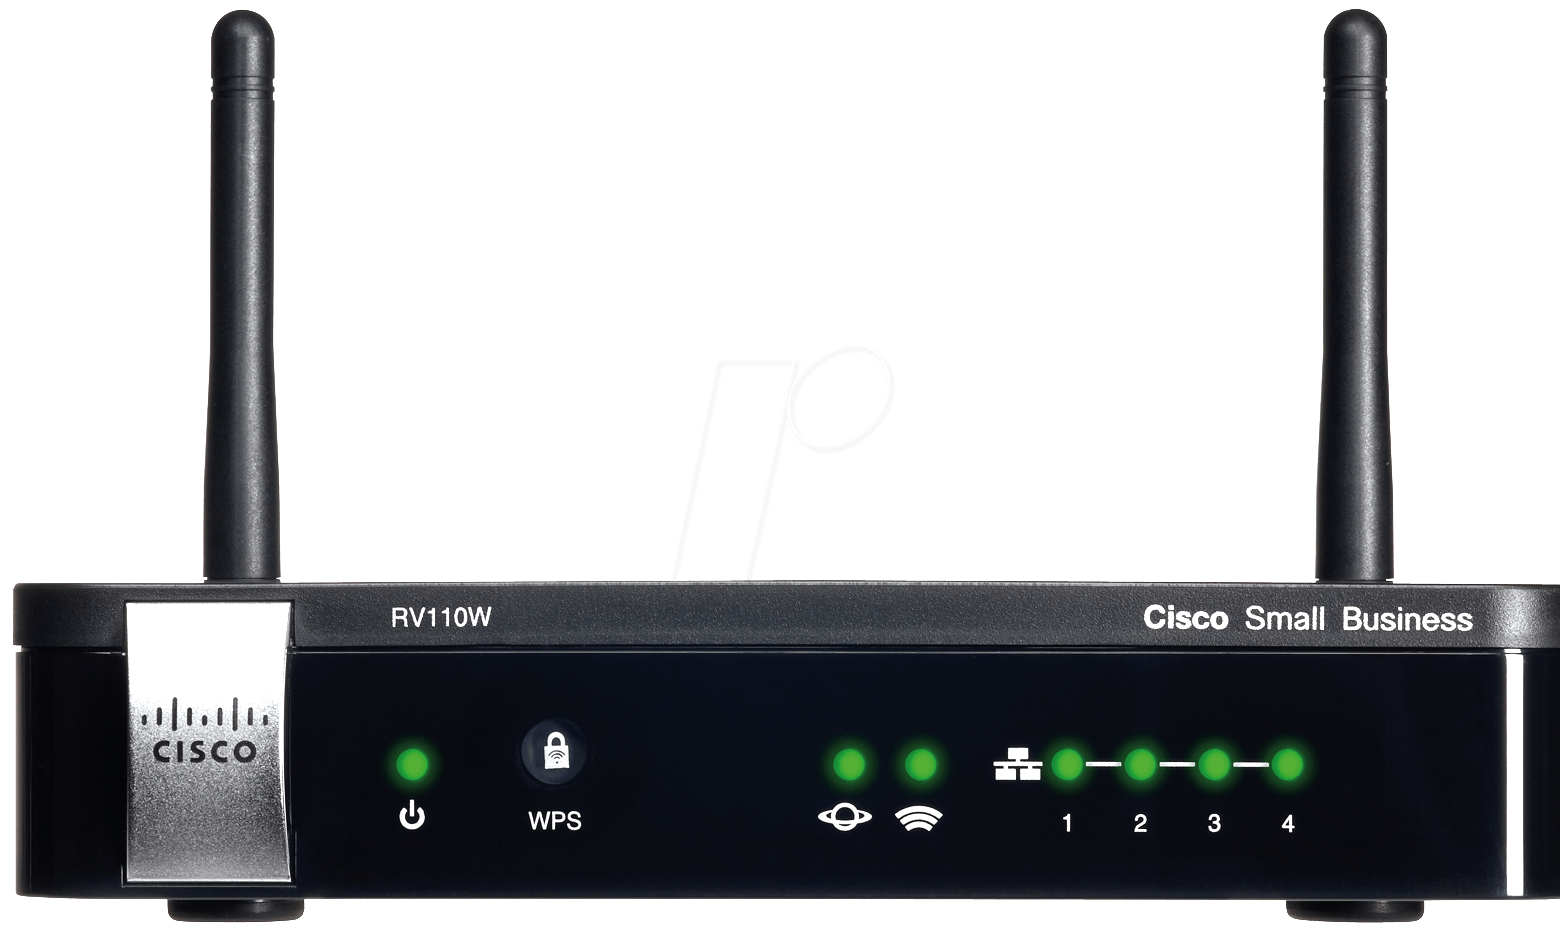 how to connect to vpn on bell modem